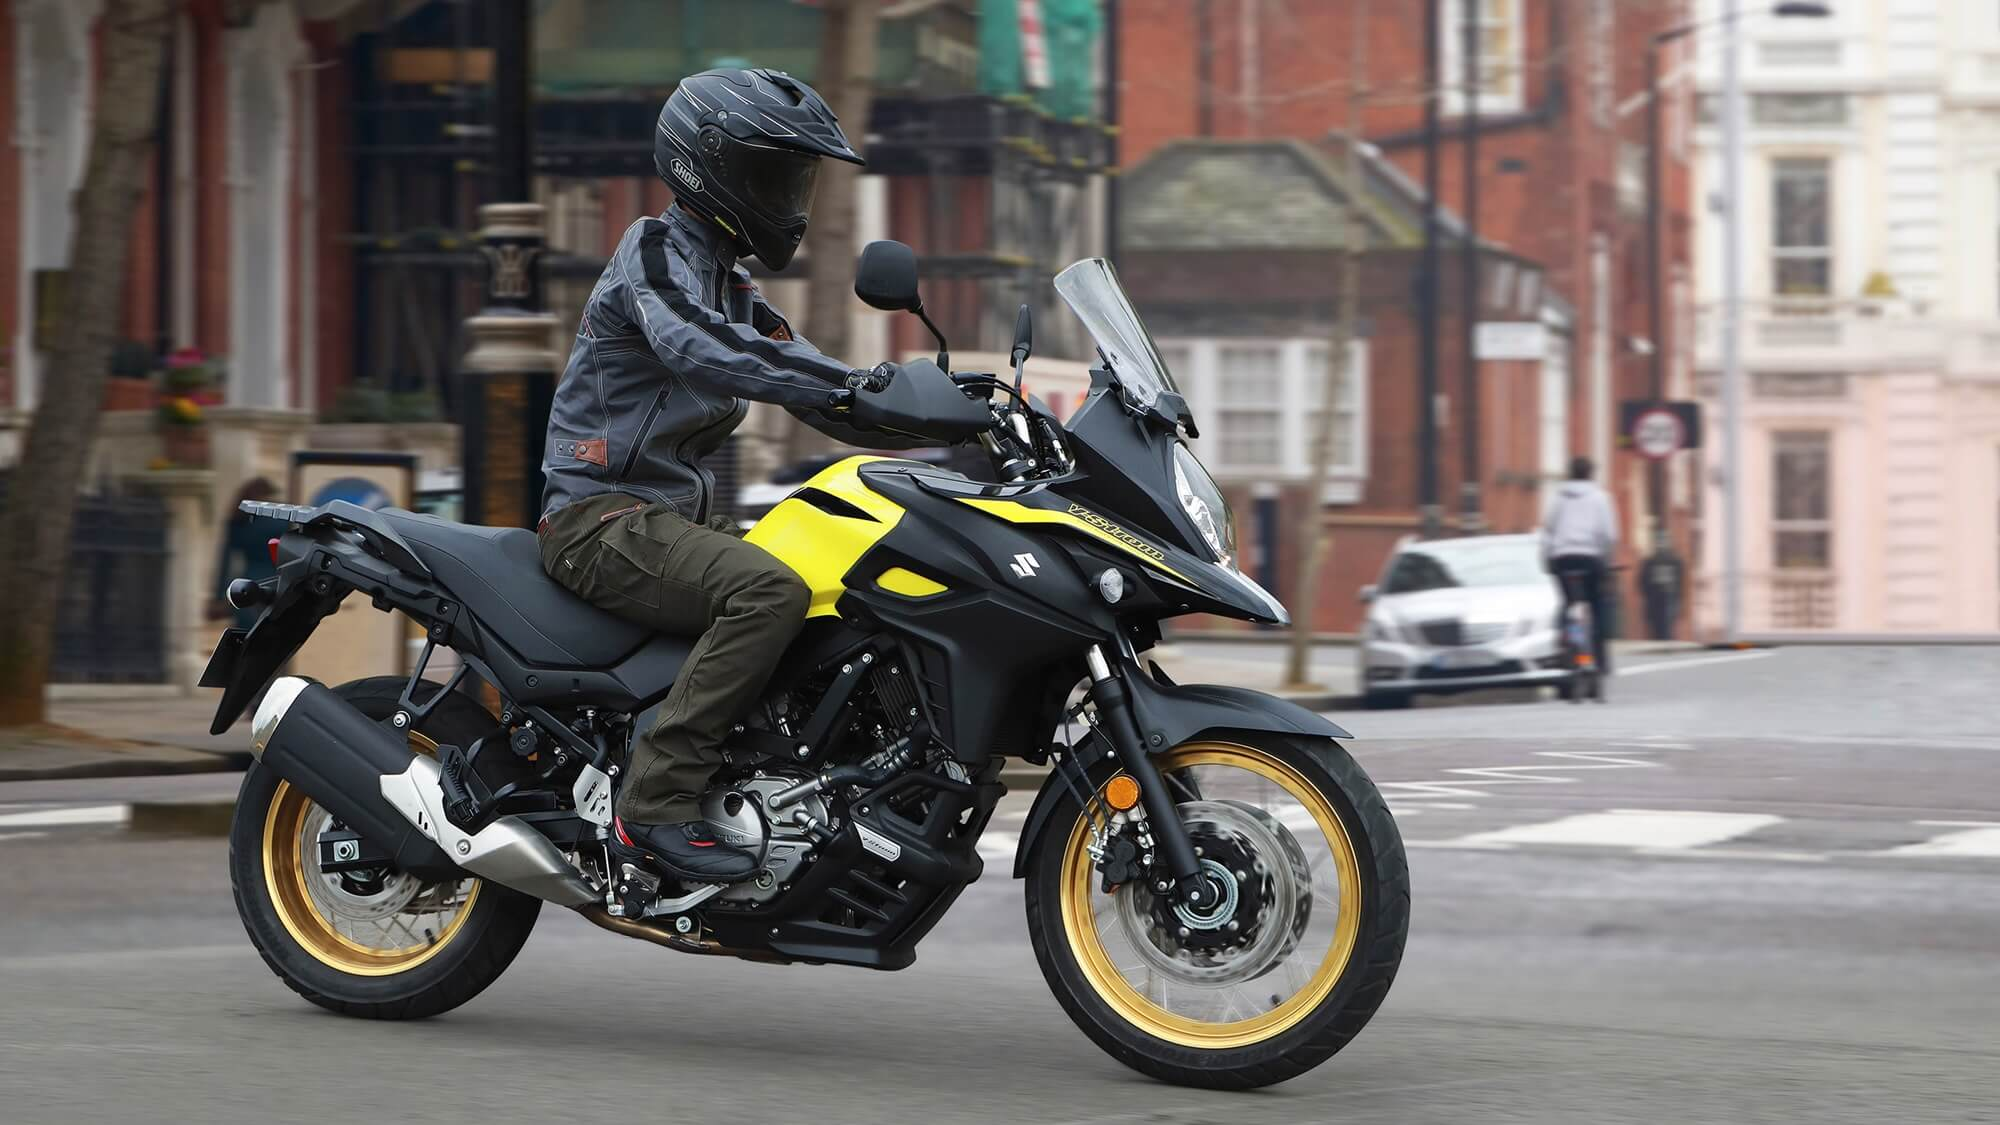 Refreshed Suzuki V-Strom 650 XT ABS launched at 7.46 lakh